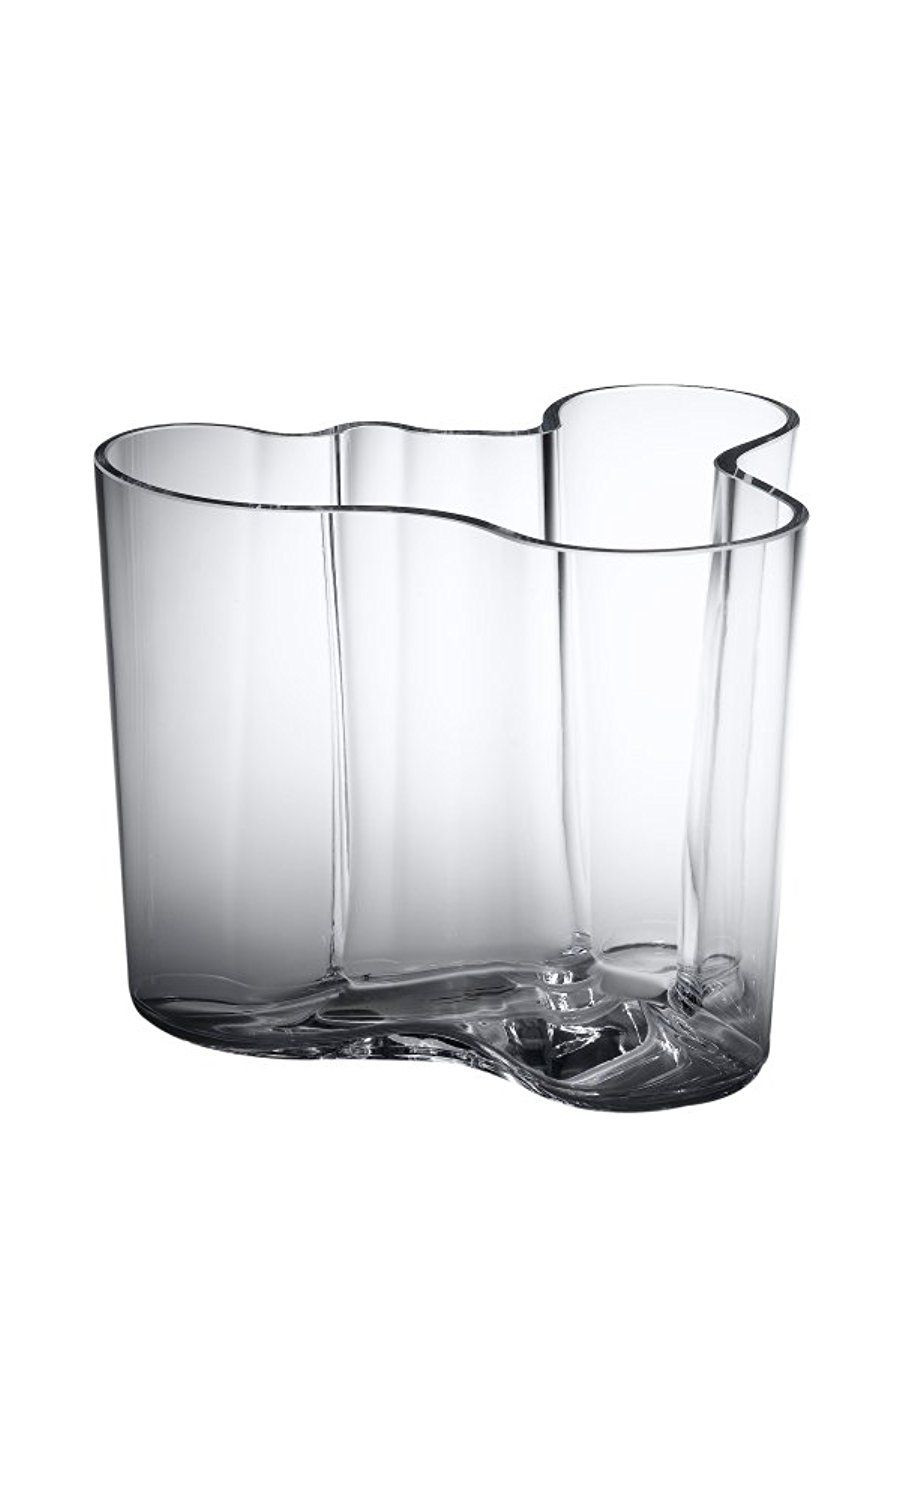 iittala aalto vase of 174 99 174 99 iittala aalto 6 1 4 inch glass vase from iittala regarding amazon com iittala aalto 6 1 4 inch glass vase home kitchen